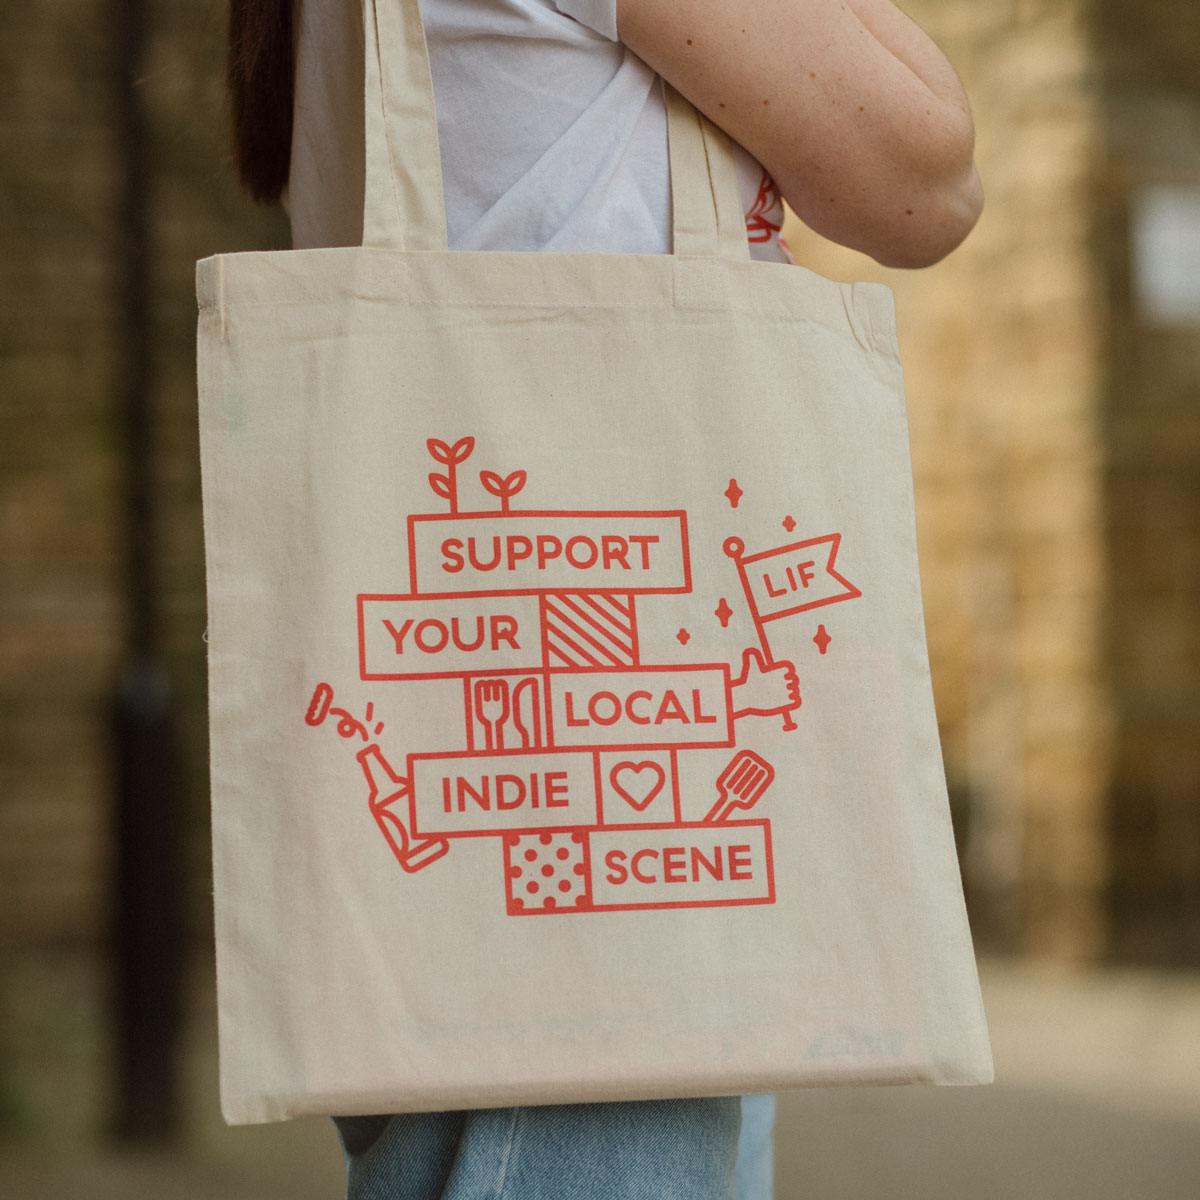 100 x Natural Screen Printed Tote Bag Deal